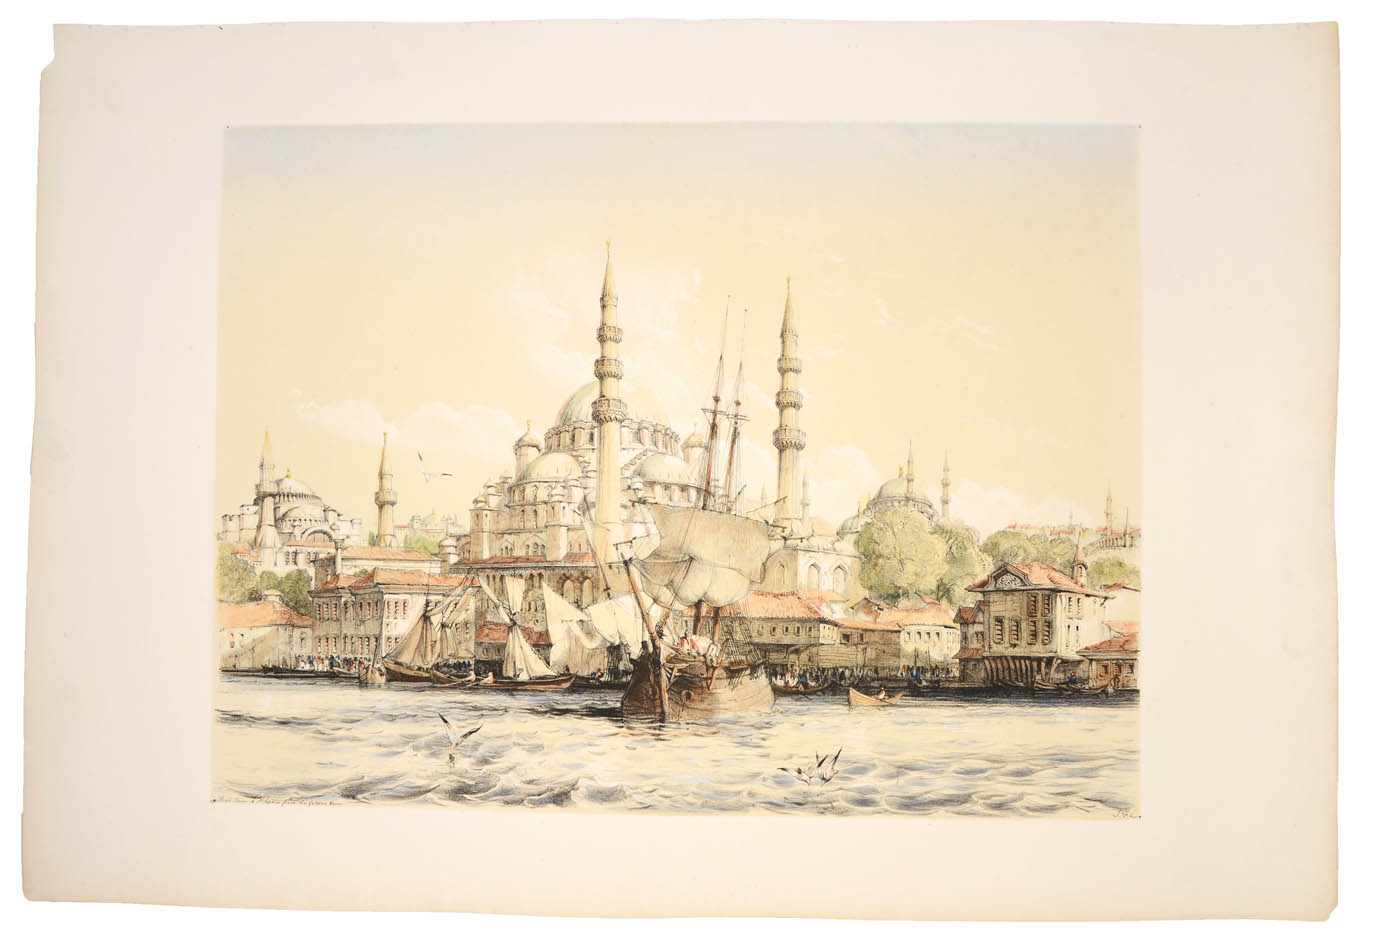 Lot 48 - LEWIS, John F. Lewis's illustrations of Constantinople